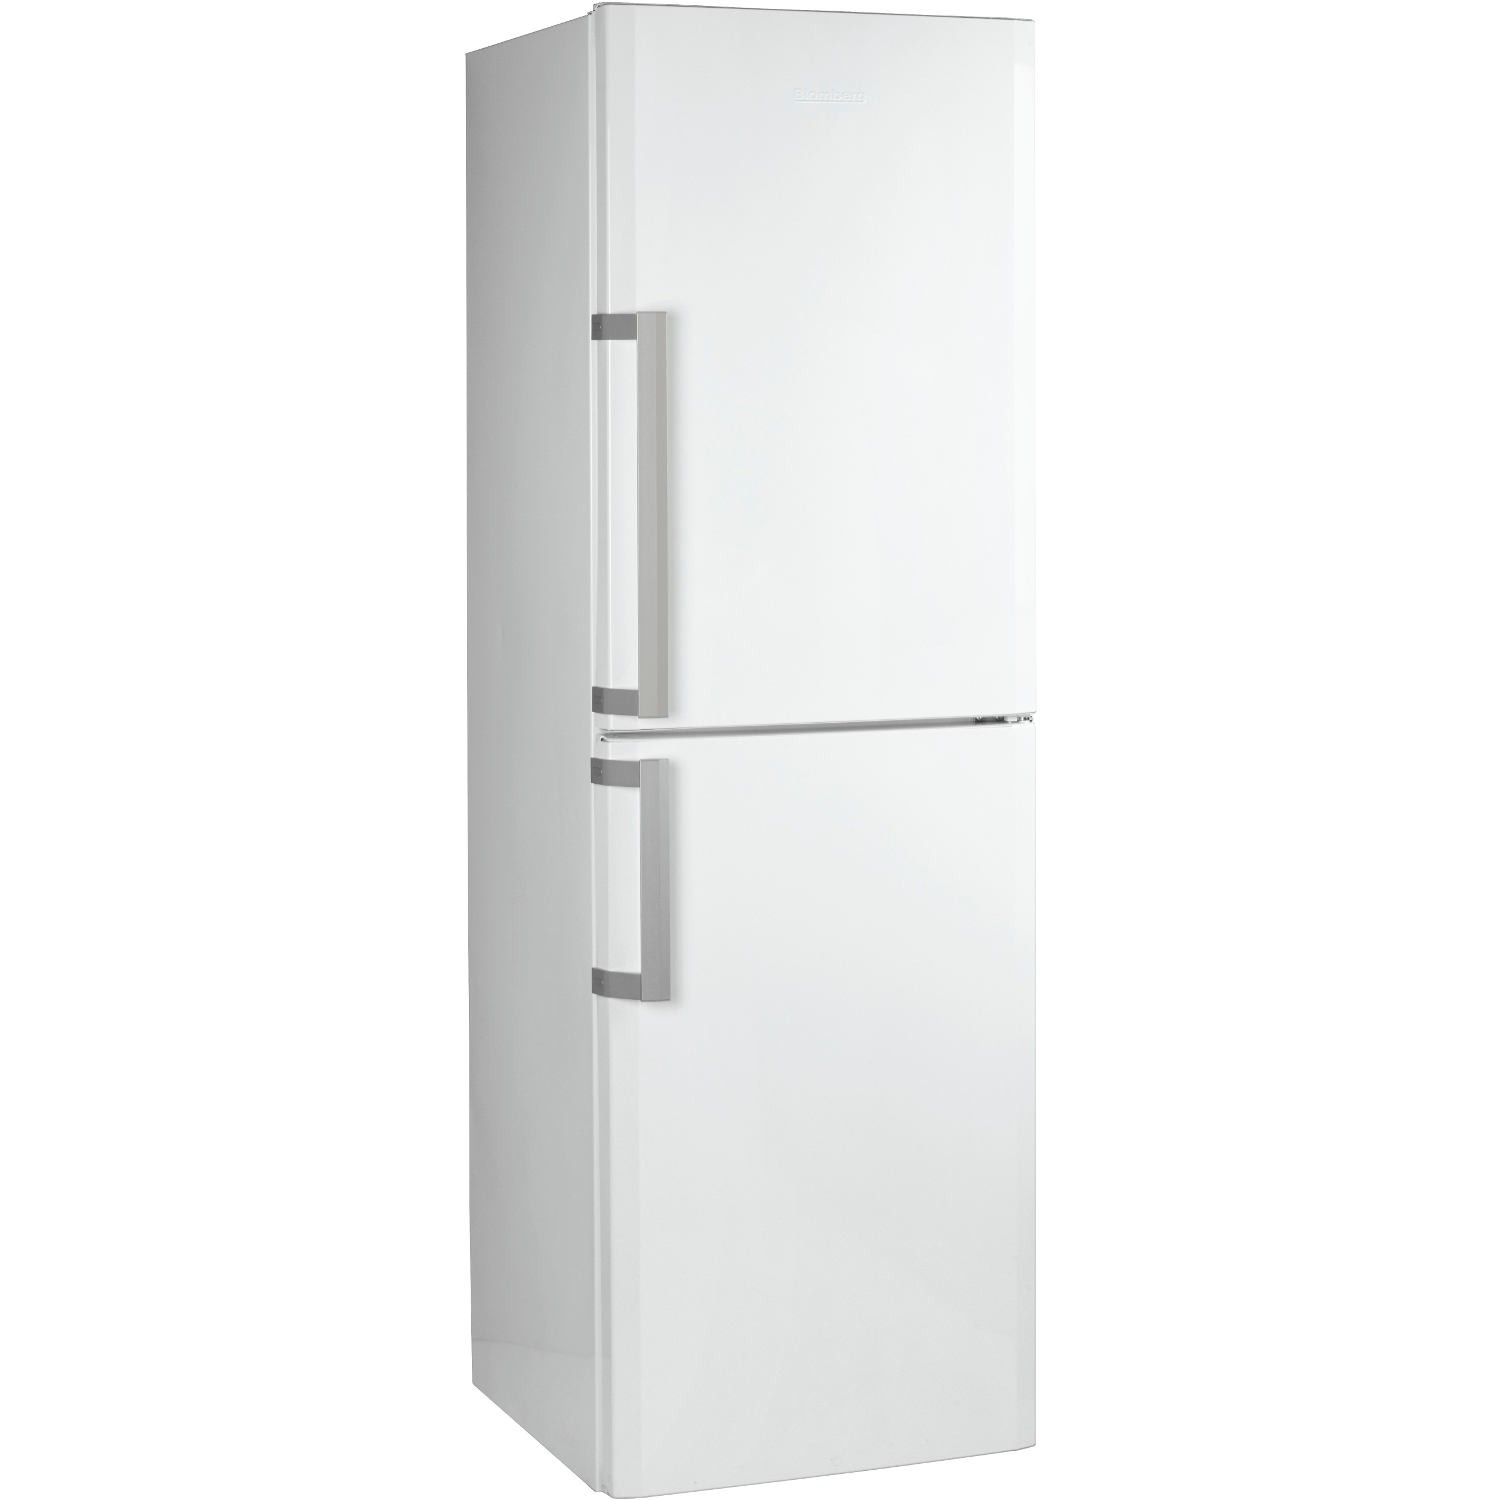 Blomberg KGM9681 60cm Frost Free Fridge Freezer - White - A+ Rated